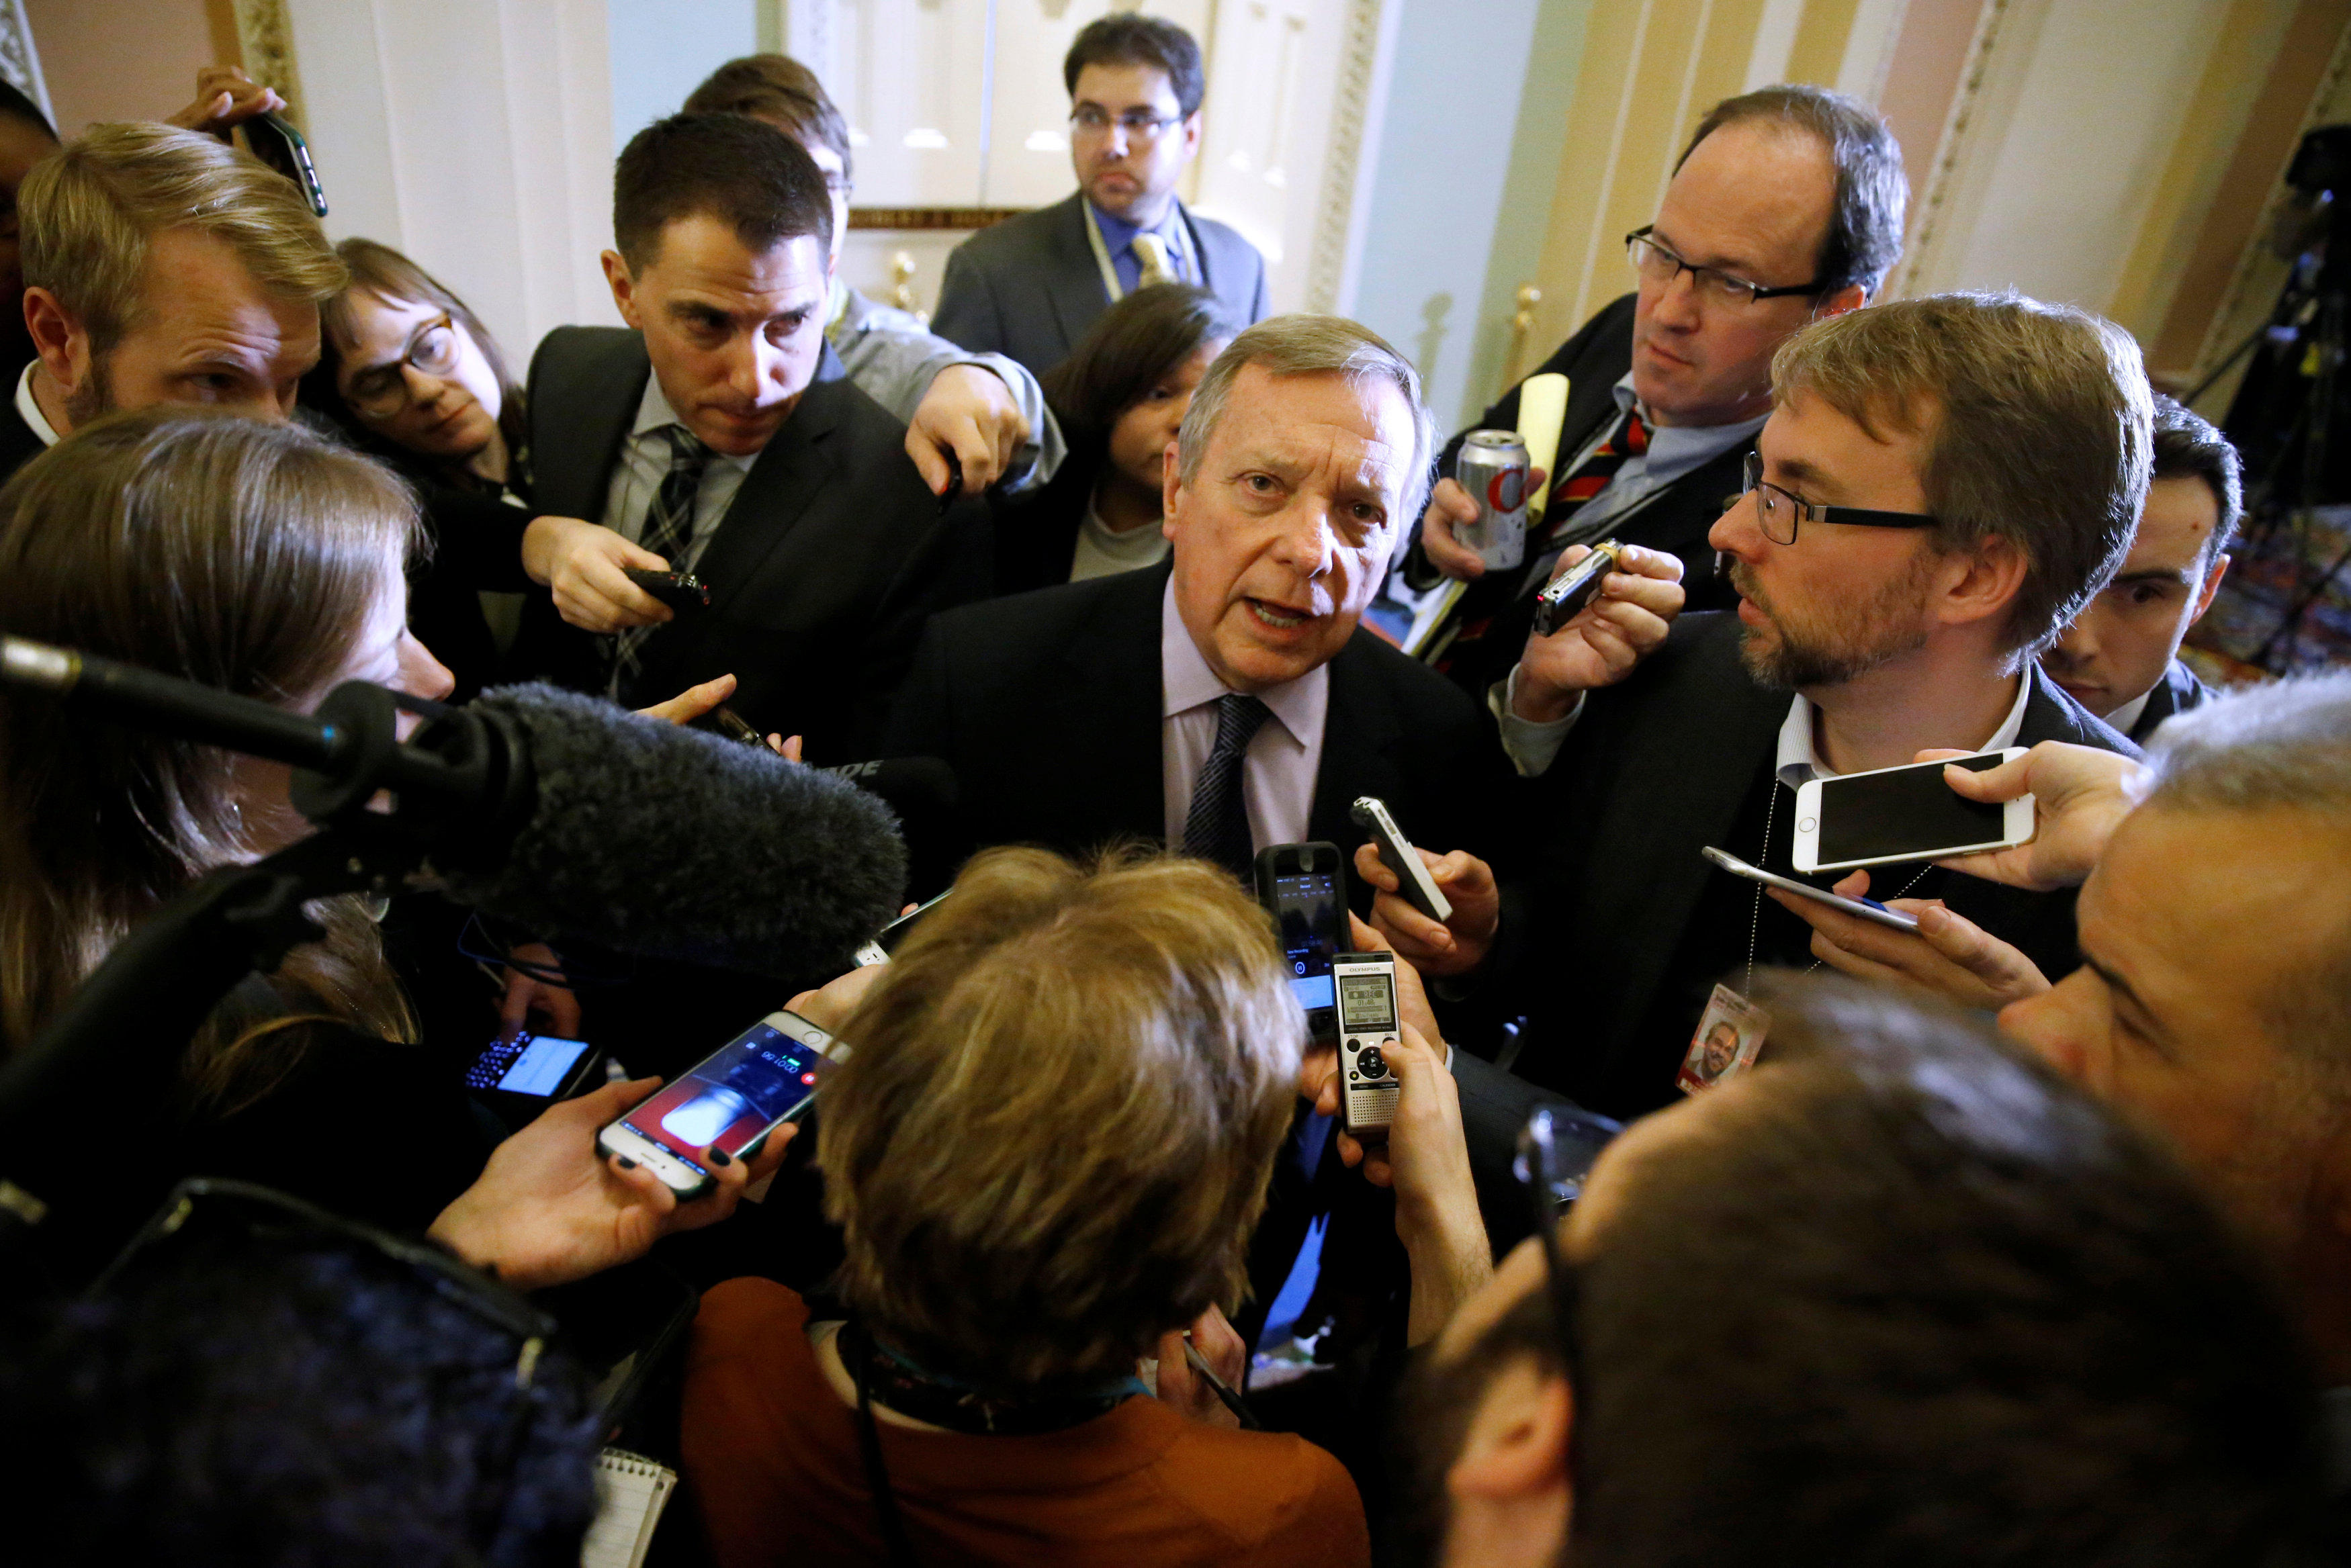 U.S. Senator Richard Durbin (D-IL) (C) talks with reporters after the weekly Democratic caucus policy luncheon at the U.S. Capitol in Washington, U.S.